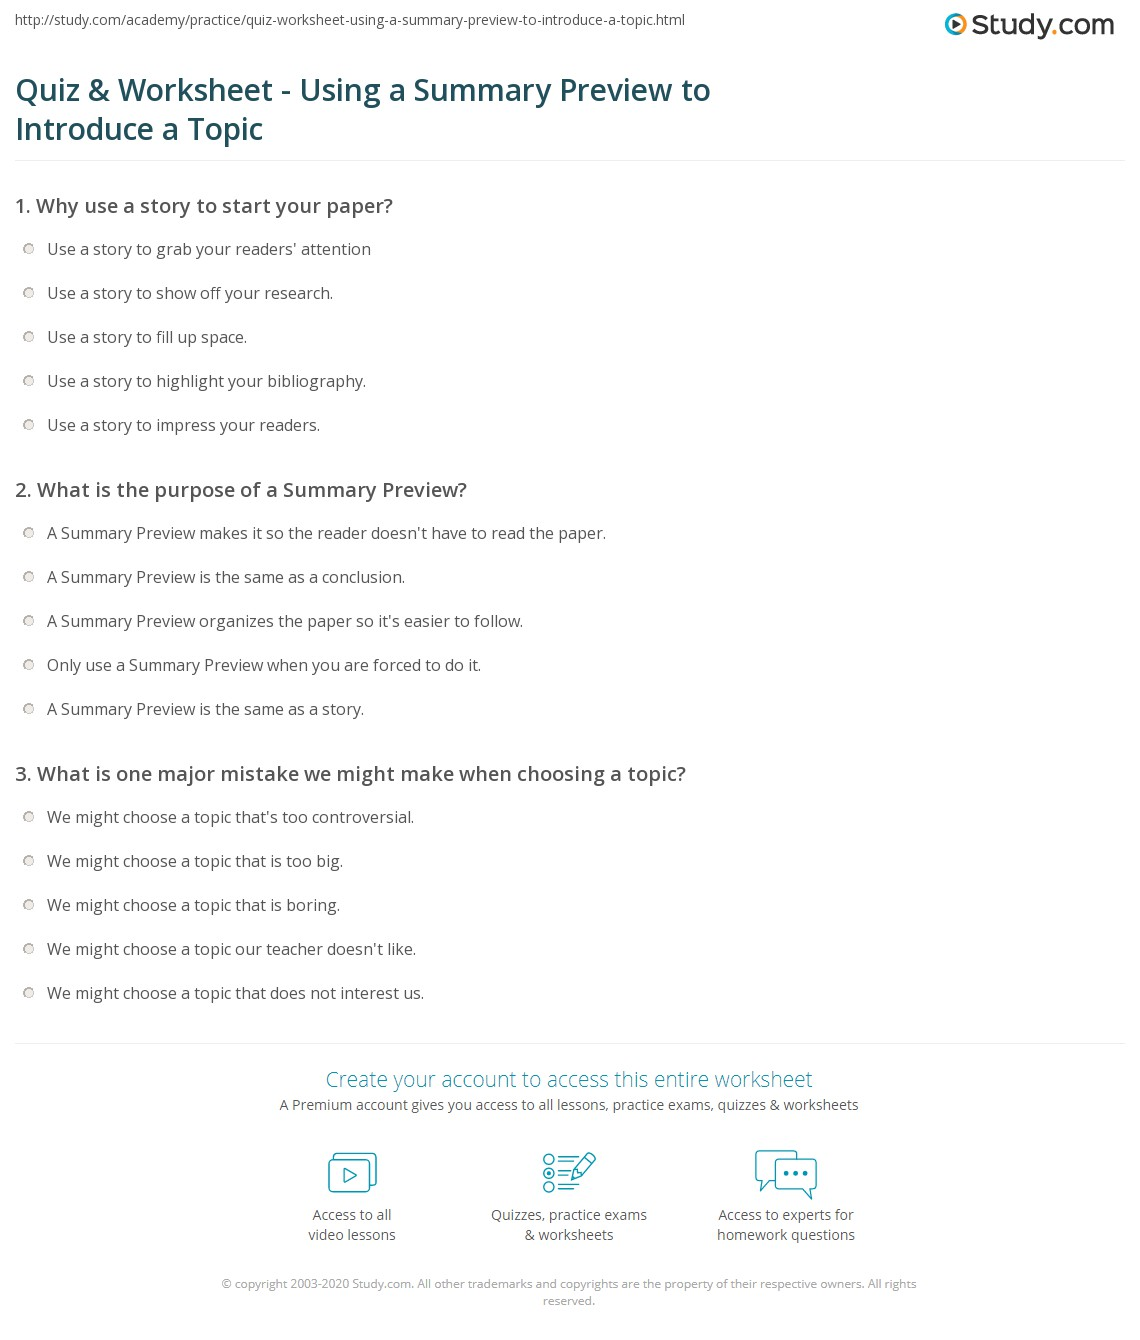 quiz worksheet using a summary preview to introduce a topic what is the purpose of a summary preview